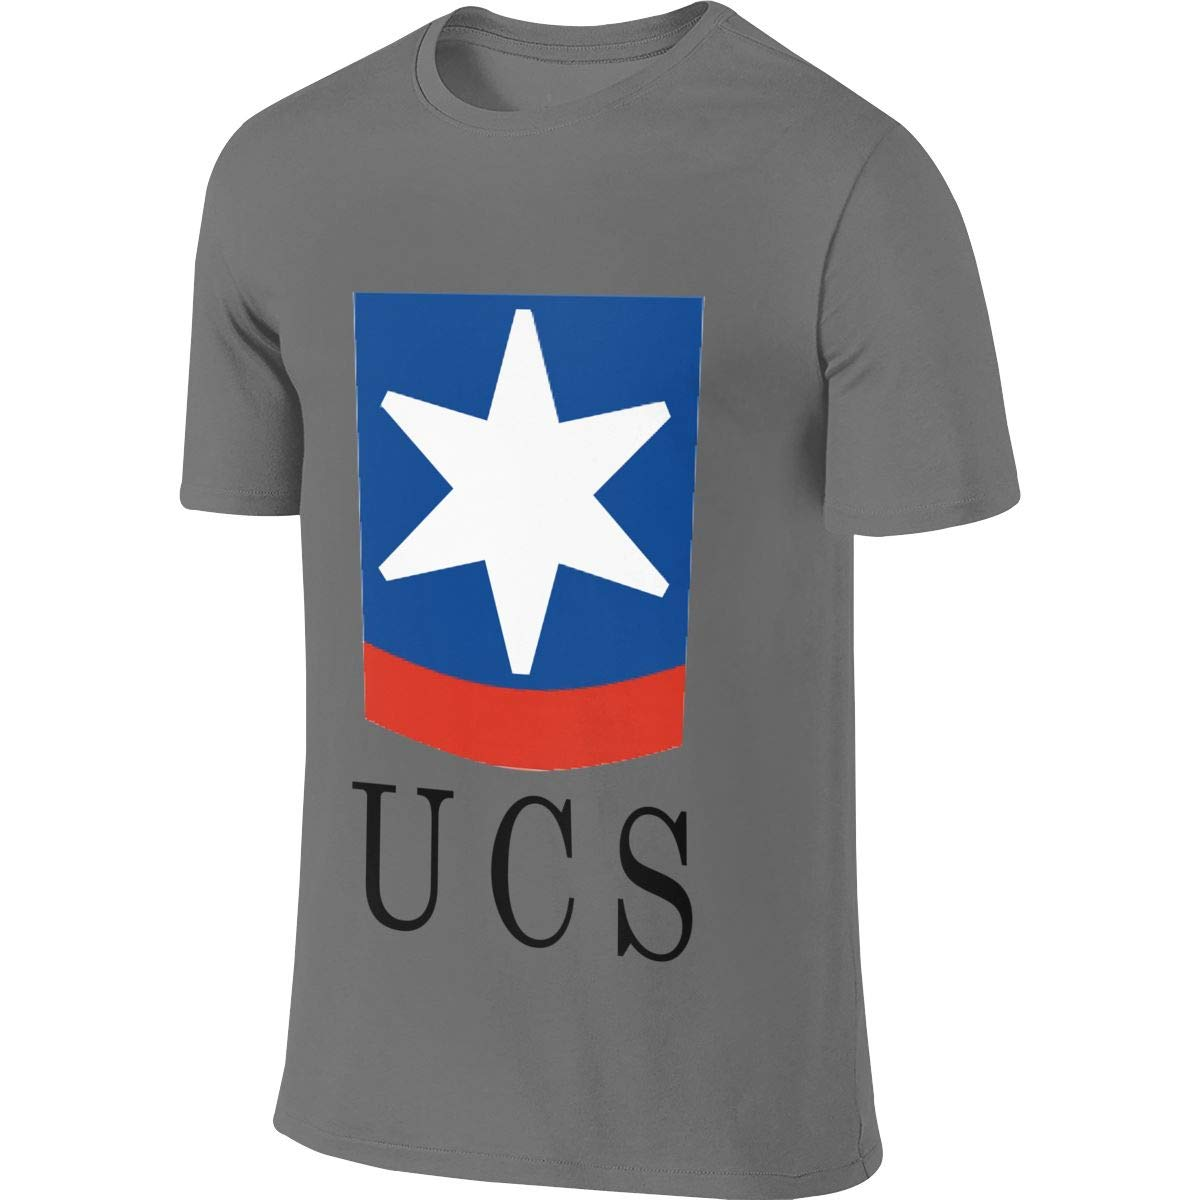 SHENGN Mens Personalized New Top UCS Logo Tshirts